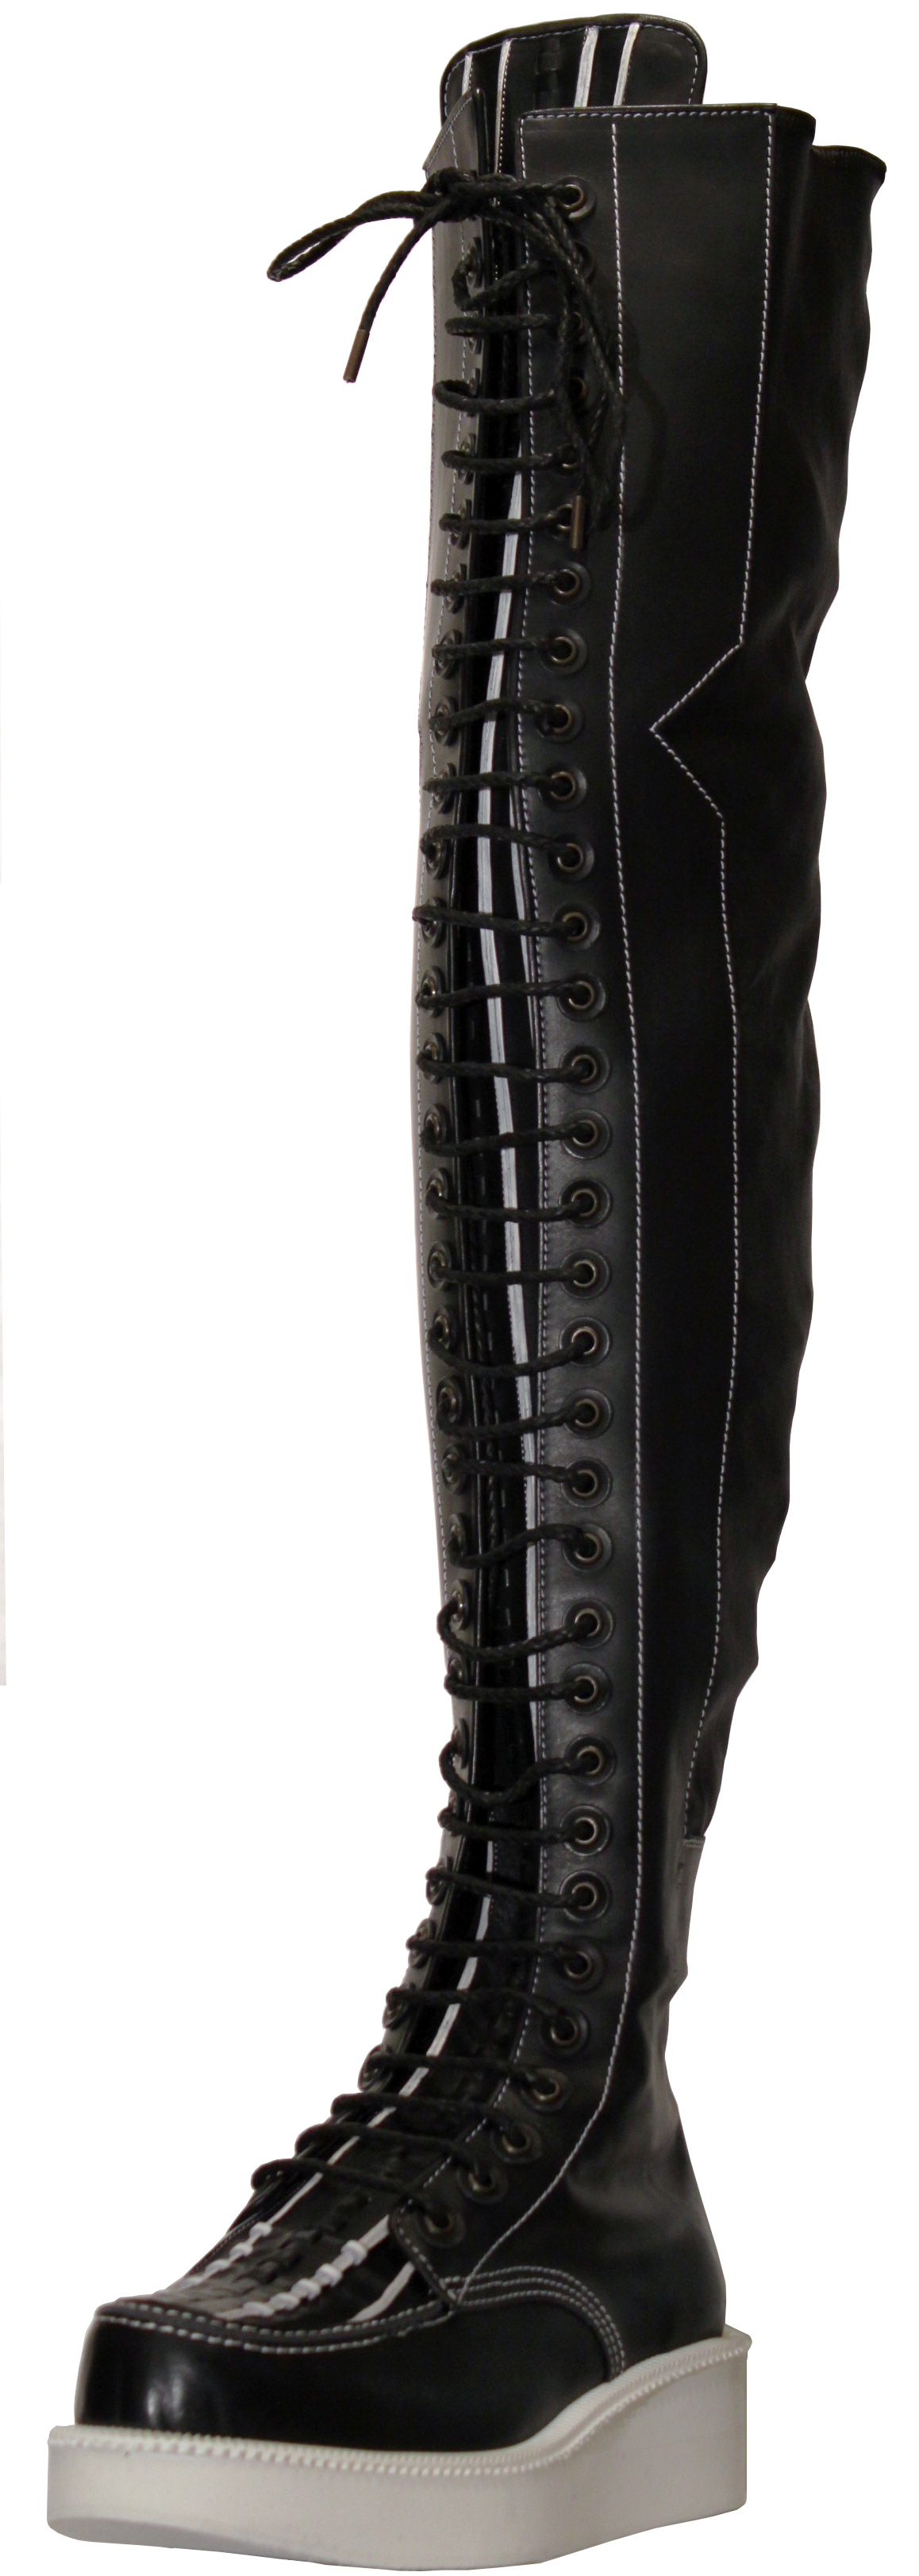 mens thigh high boots boot yc